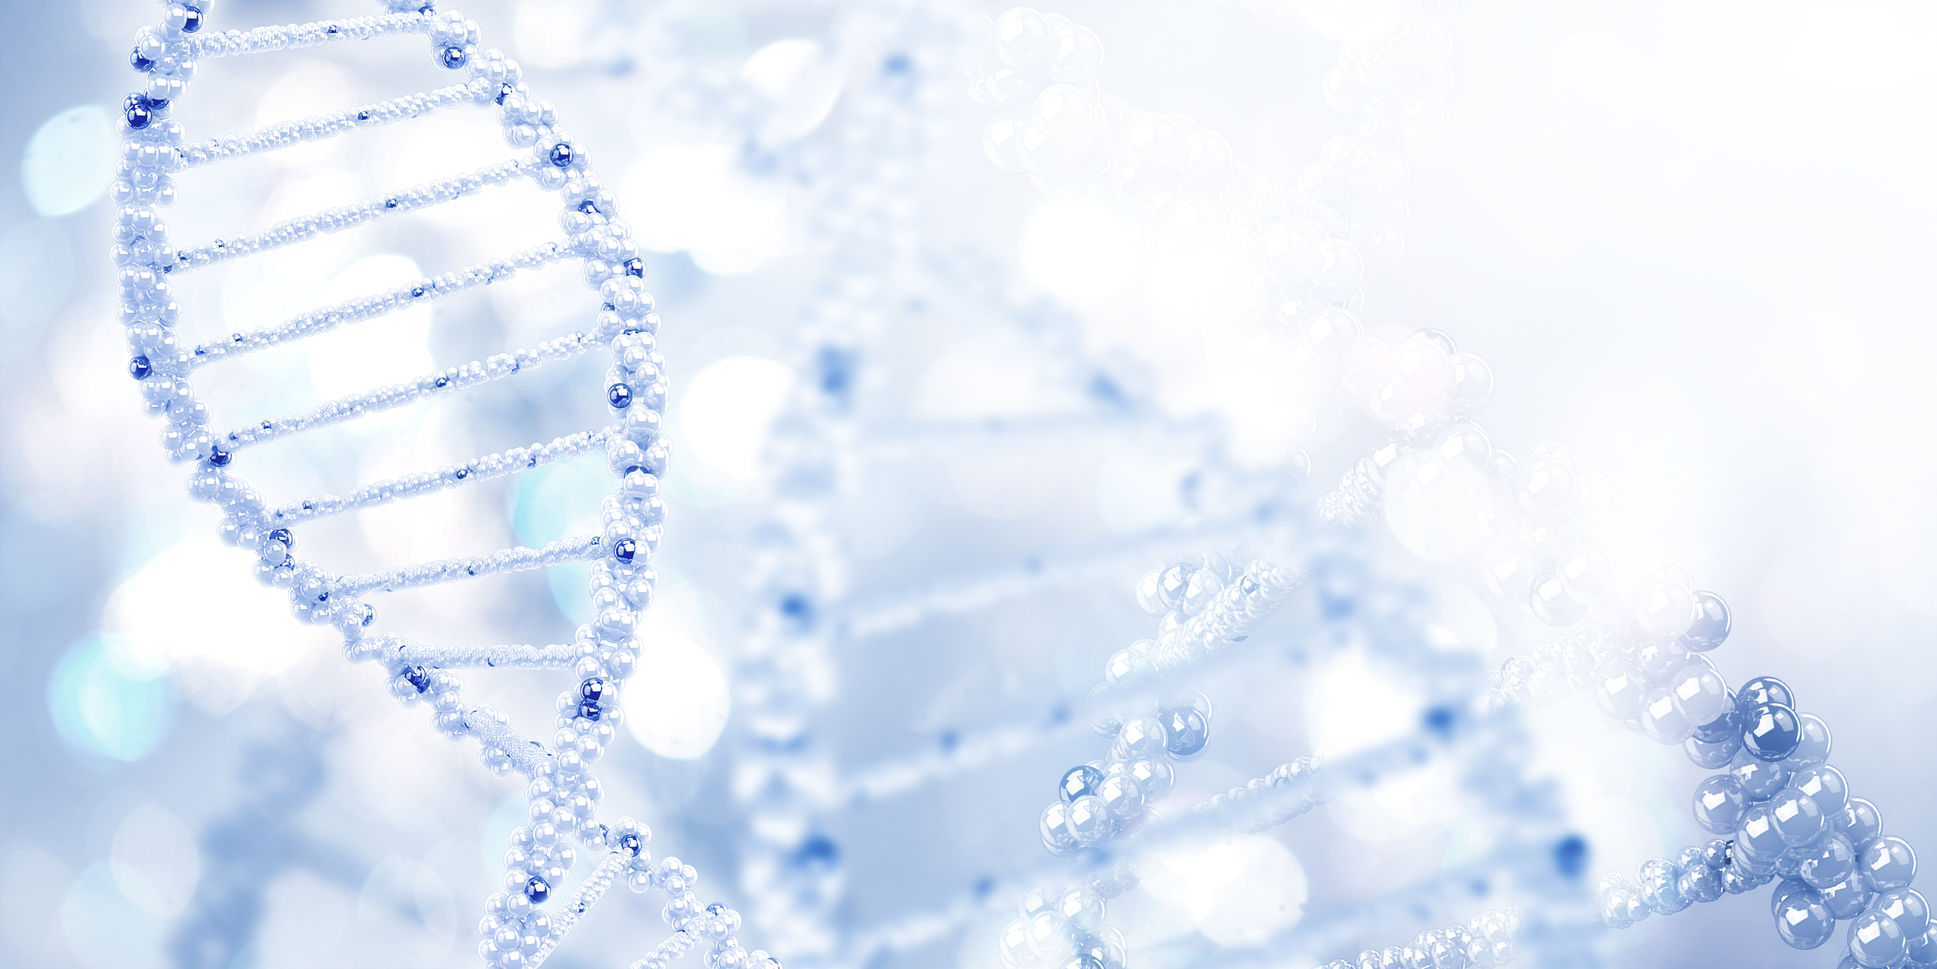 34702881 - background high tech image of dna molecule